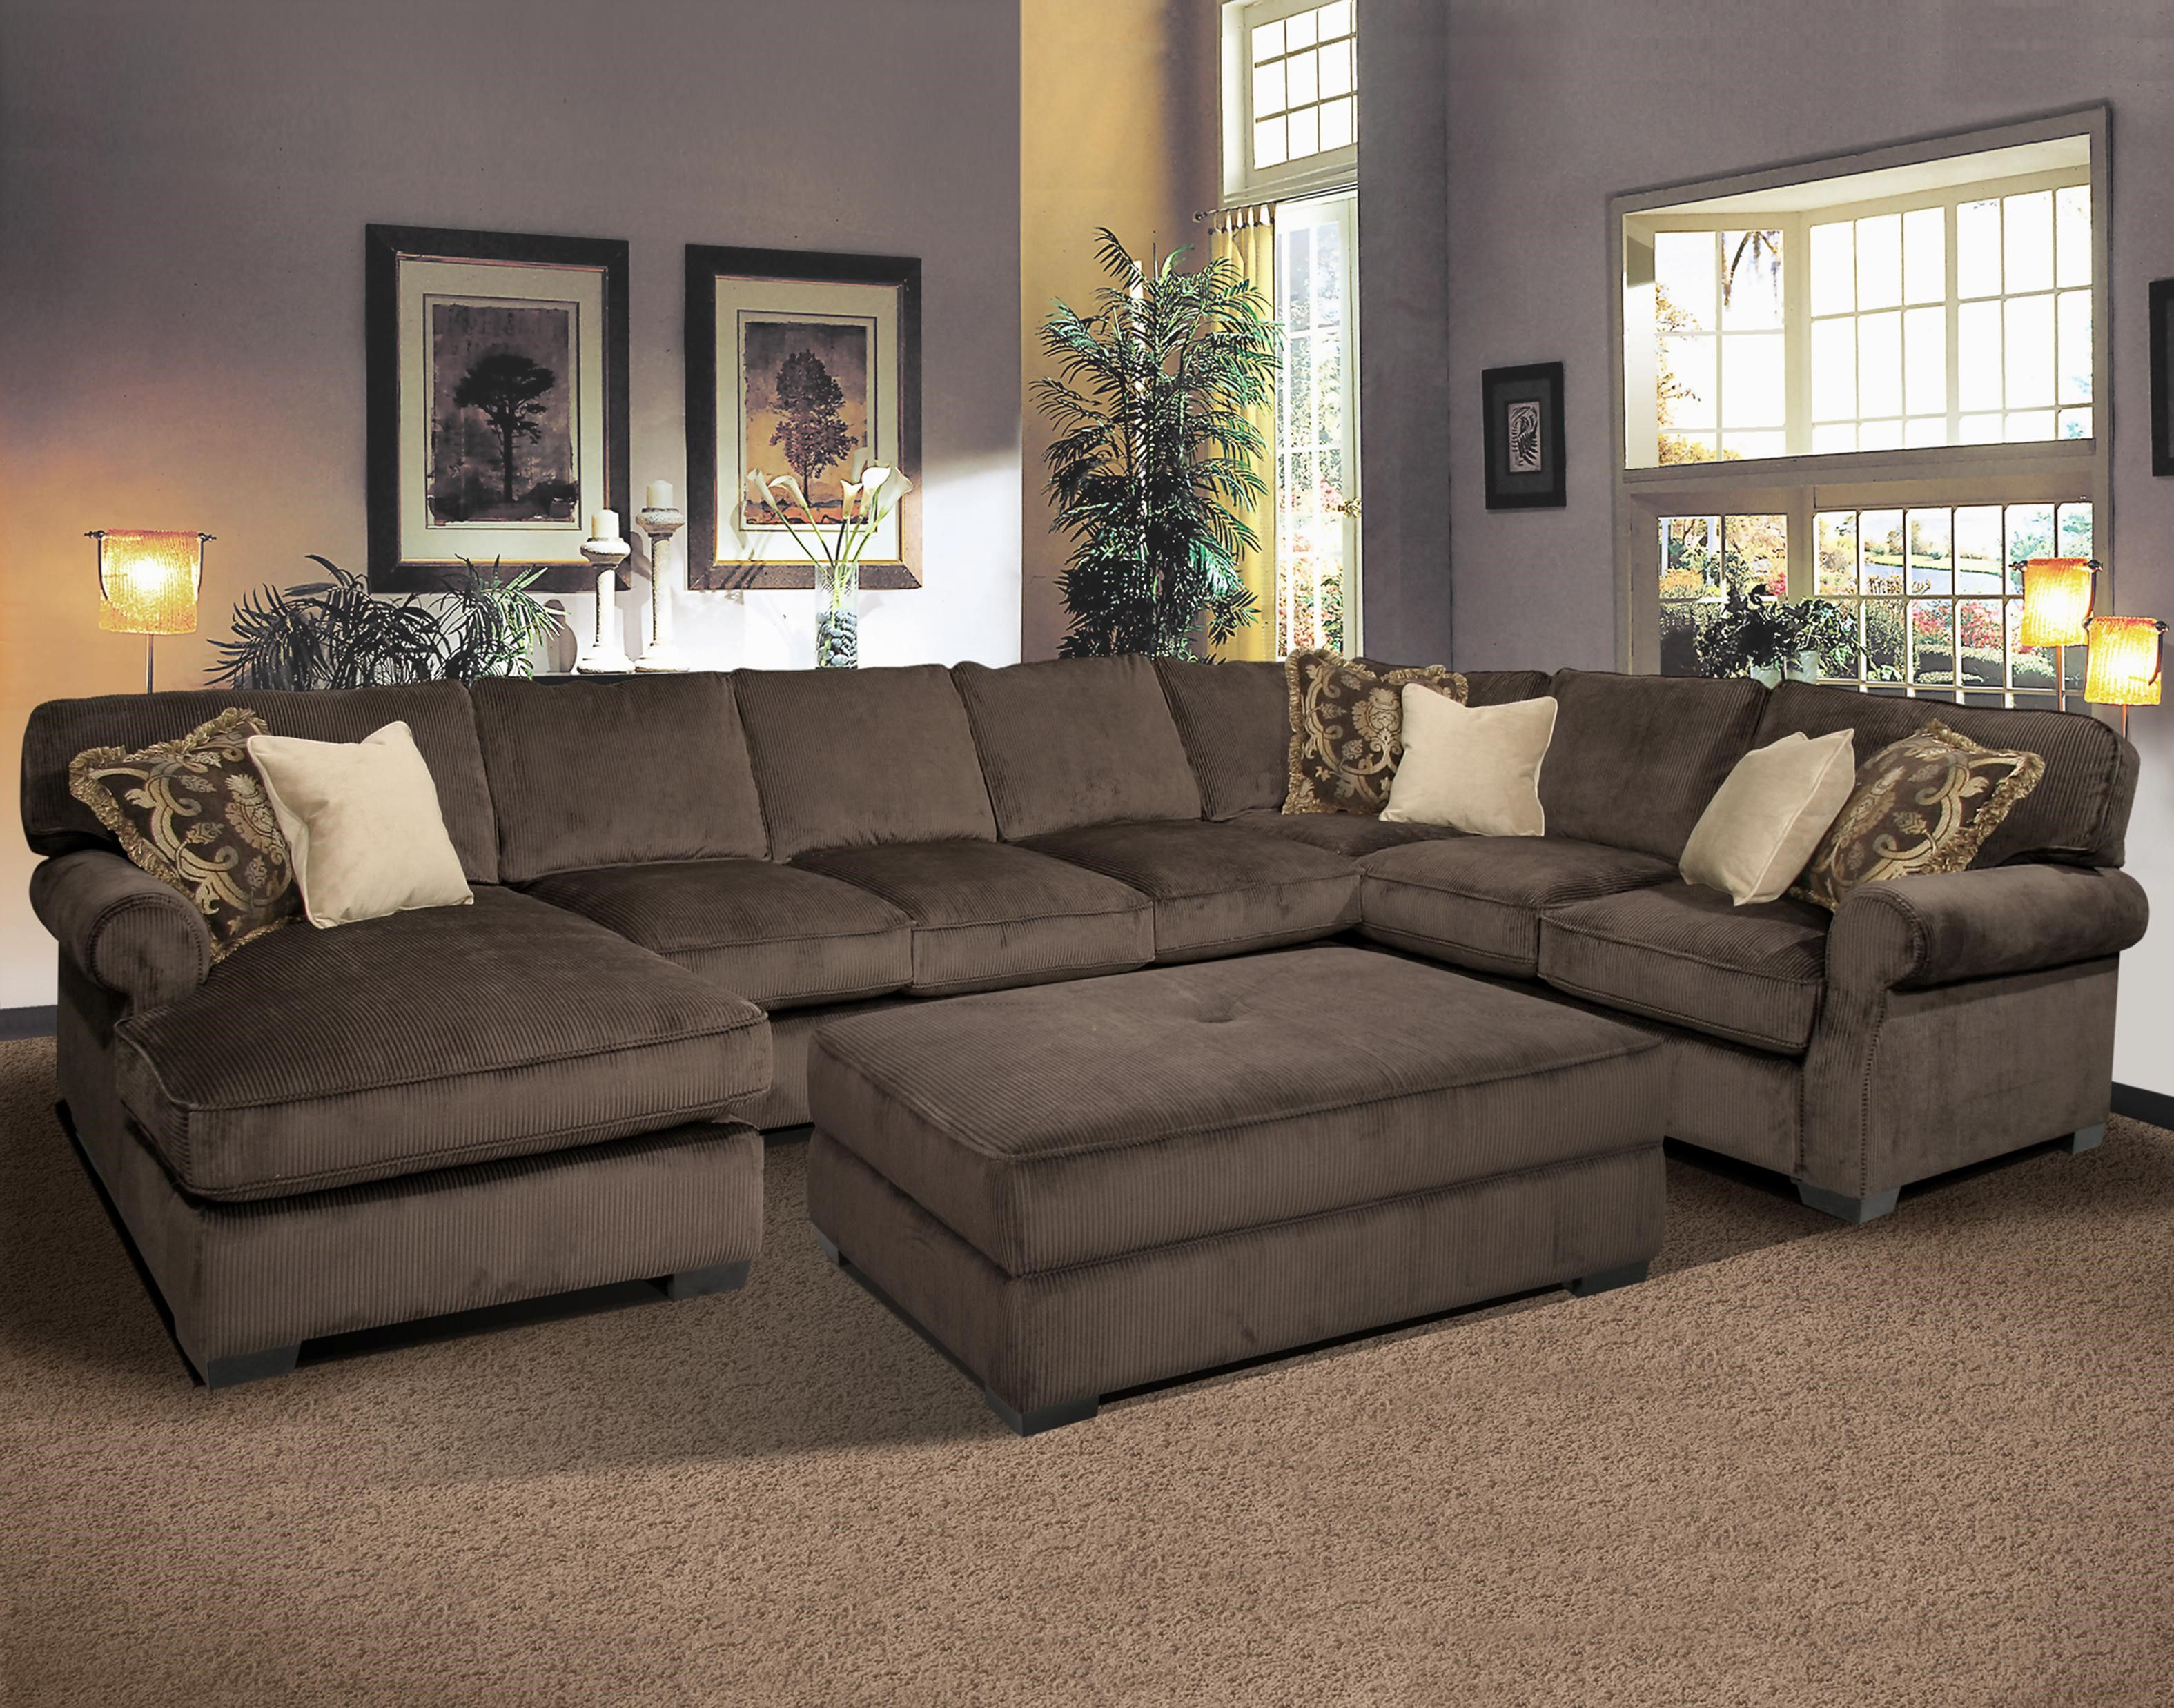 Comfortable Living Room Sofas Design With Elegant Overstuffed Couches S Goose Down